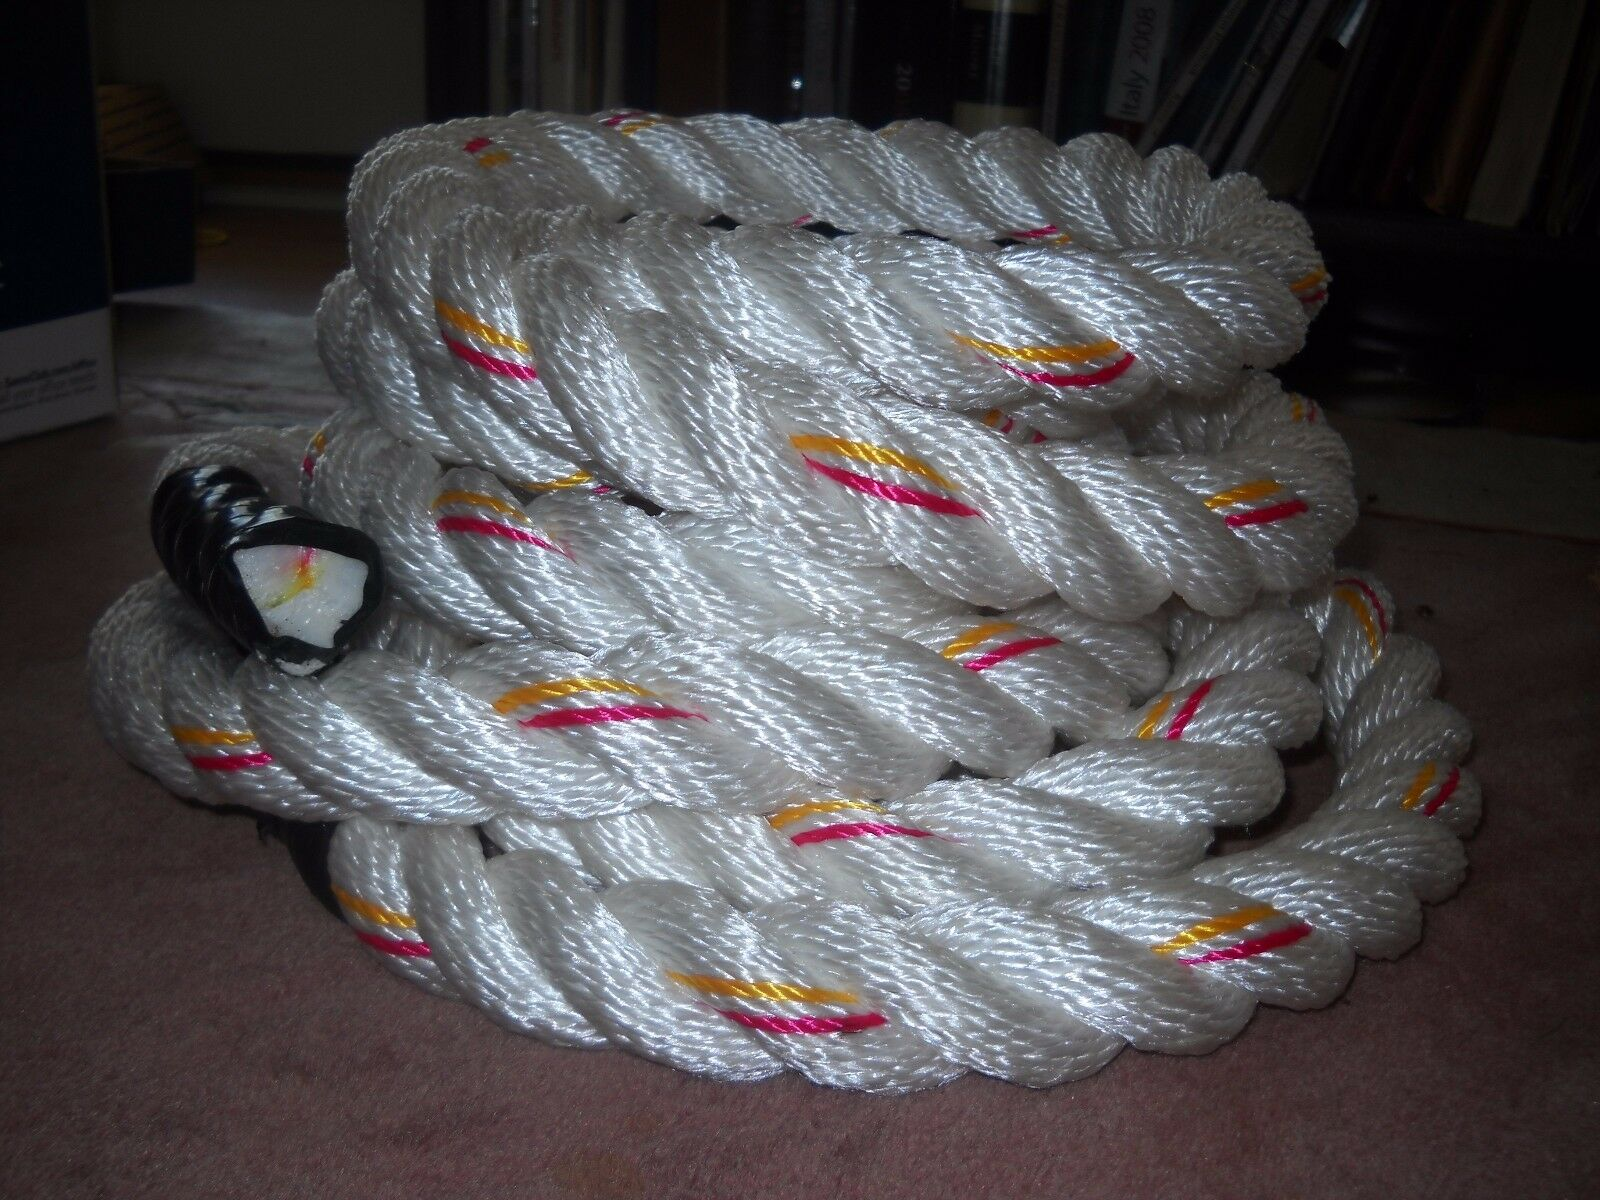 WORKOUT Rope TWO 1 1/2 x 12 Polydacron GYM Climbing TWO Rope ROPES  Shipped FREE e0368e